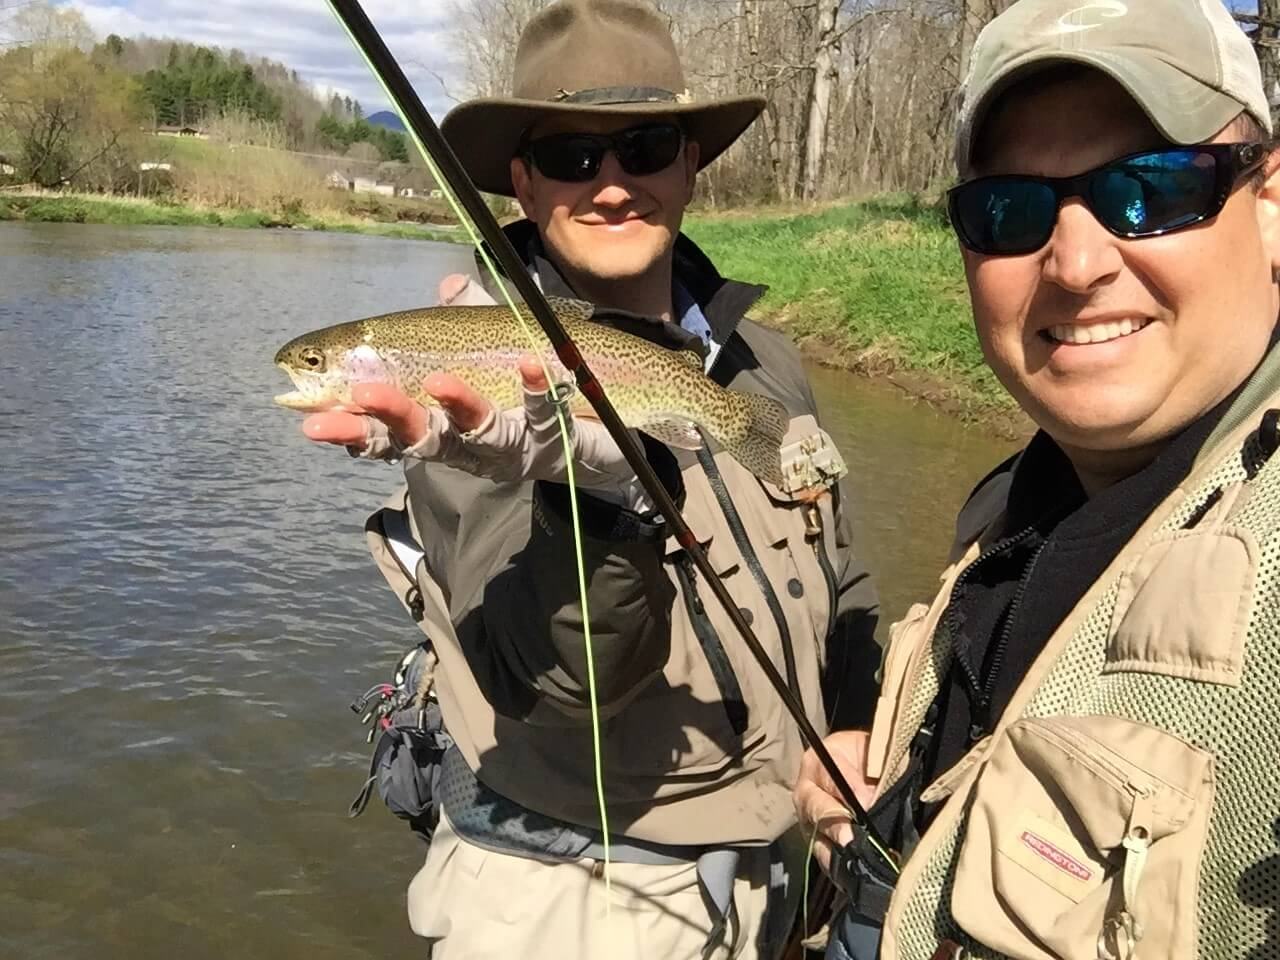 Asheville Fly Fishing Trip: How to Prepare